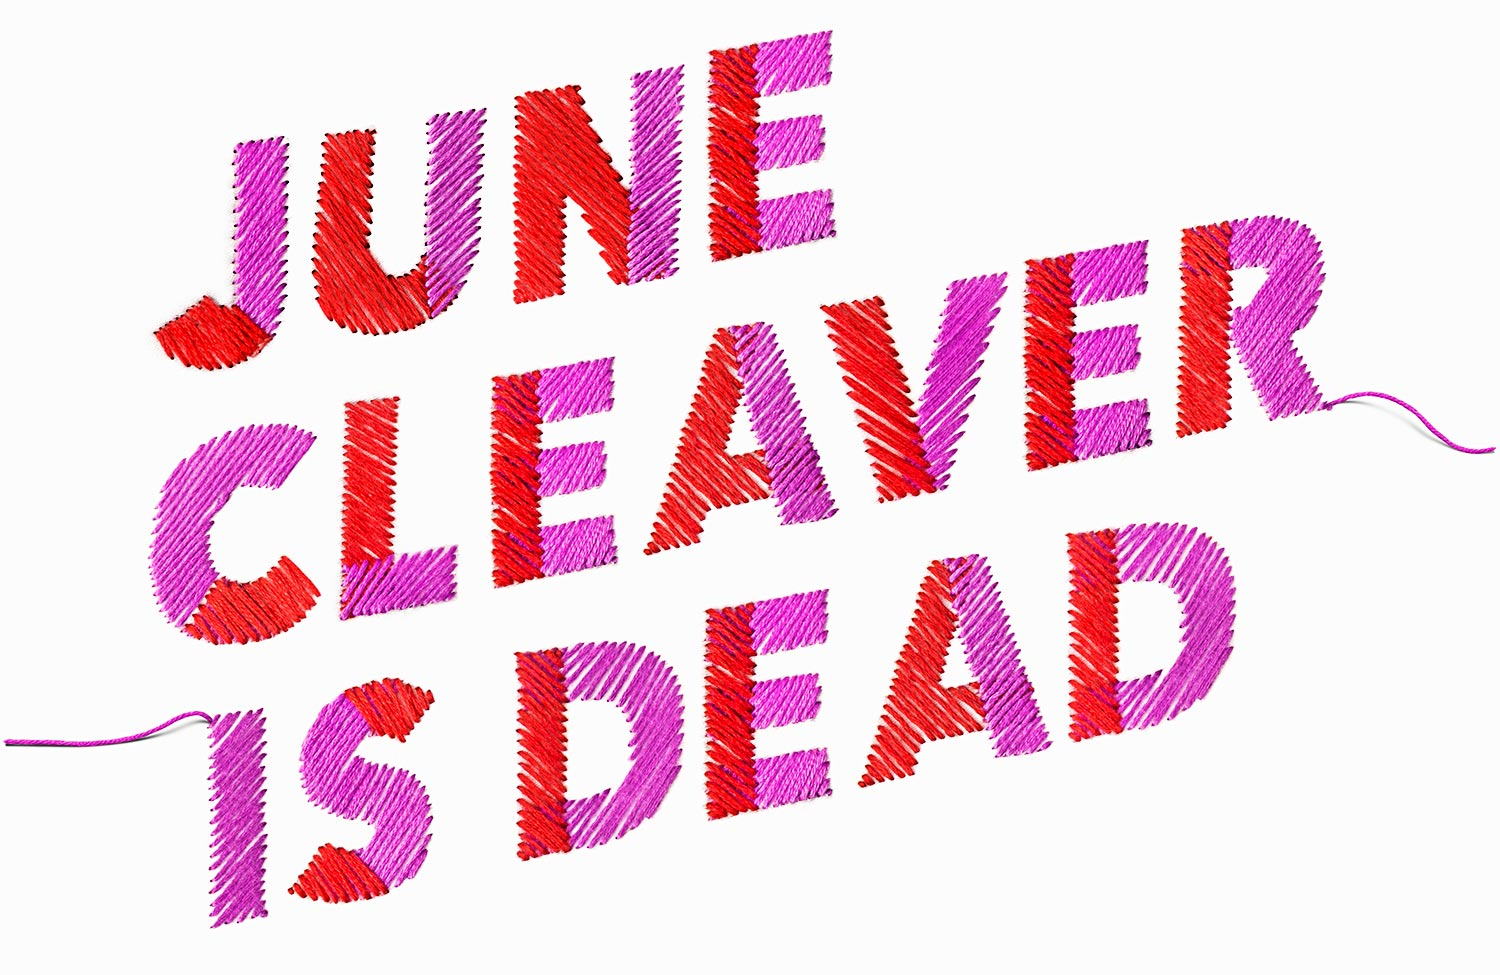 June Cleaver is Dead